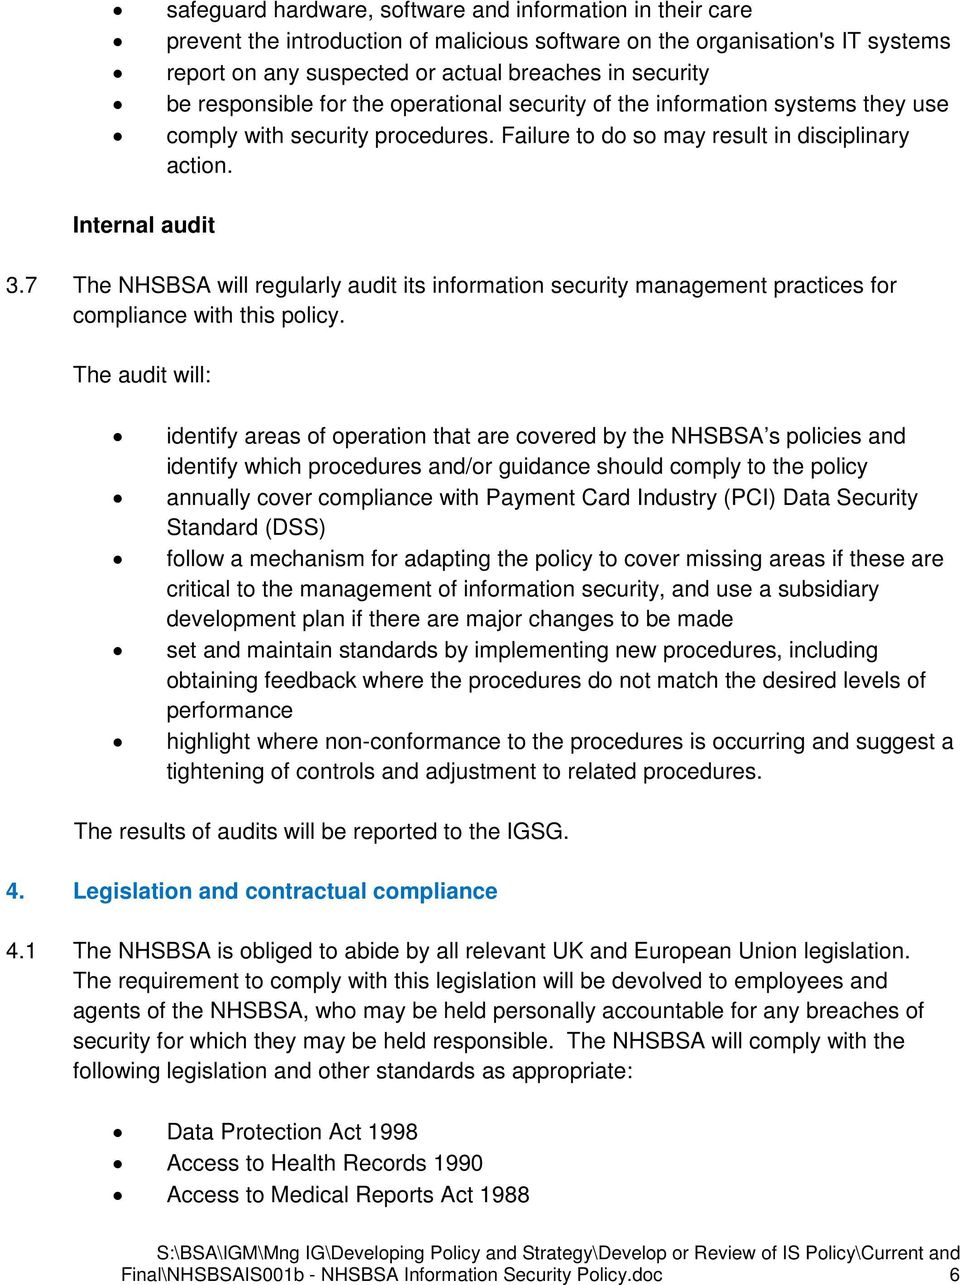 7 The NHSBSA will regularly audit its information security management practices for compliance with this policy.